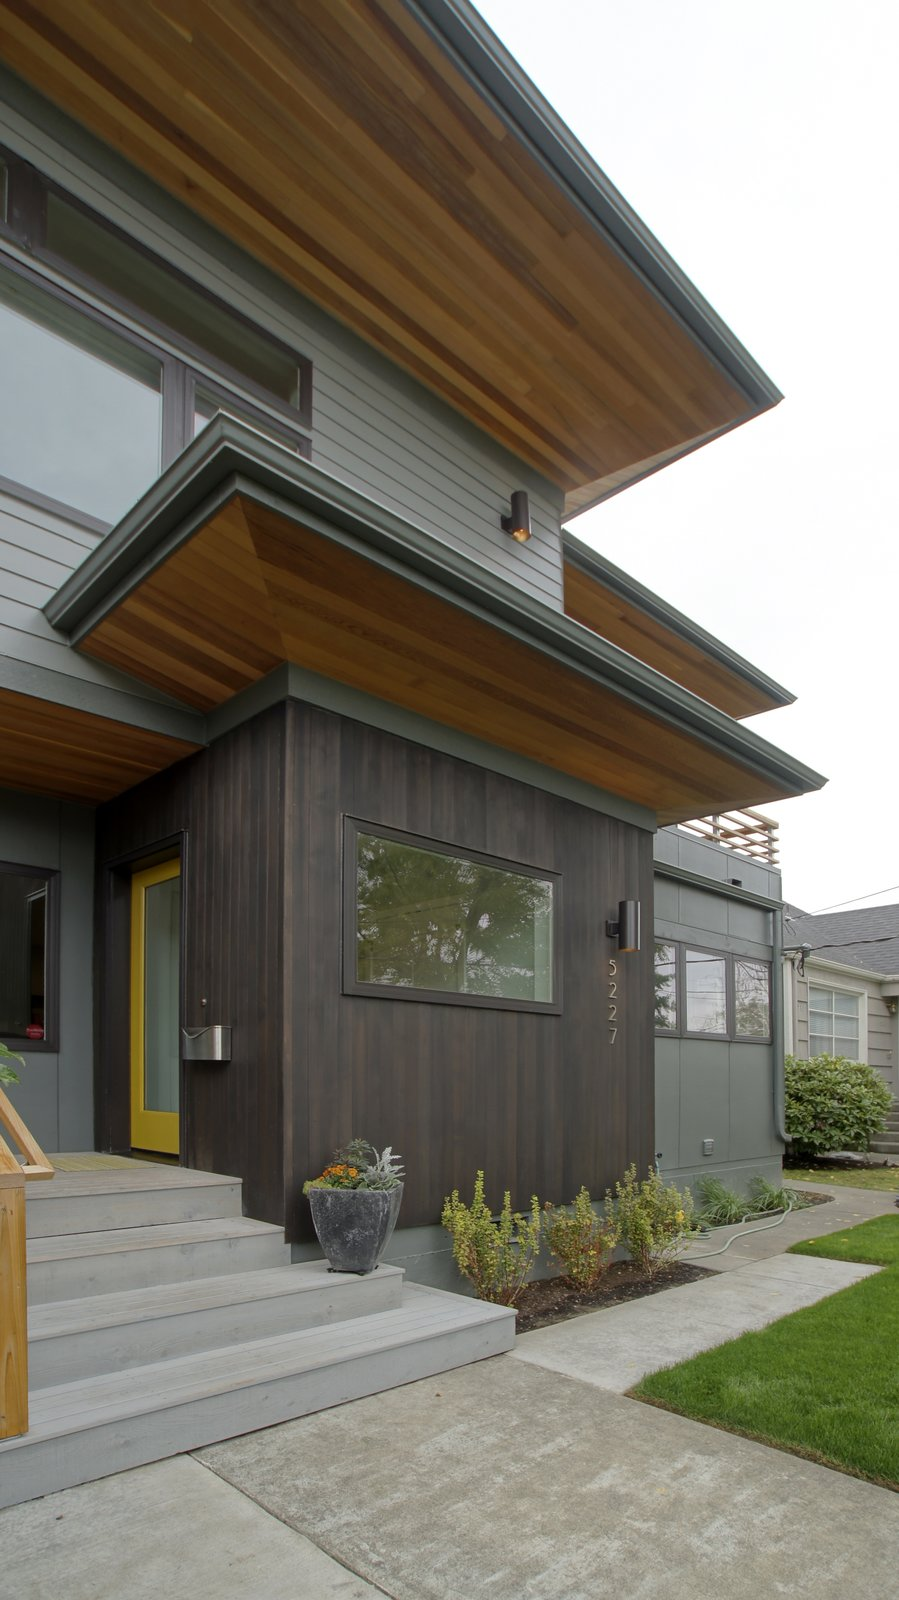 Originally a nondescript single story home, the owners hoped to add both a second story as well as a new modern sensibility to their home. Deep exaggerated eaves on the east and west sides provide visual interest as well as shading during the summer months.